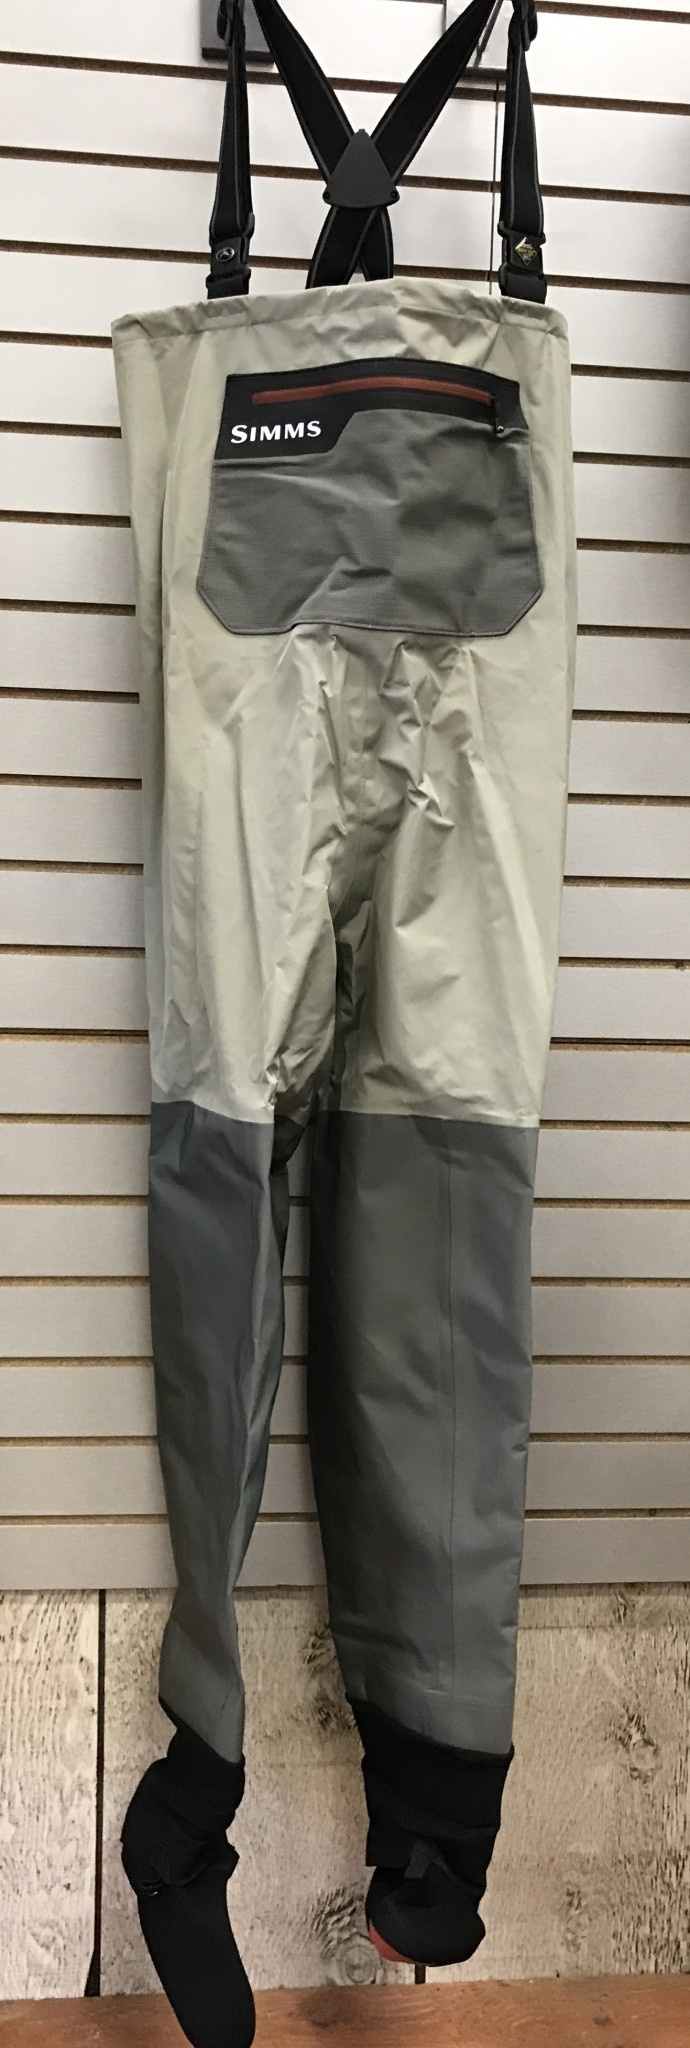 Simms Stockingfoot Headwaters Wader Size Small